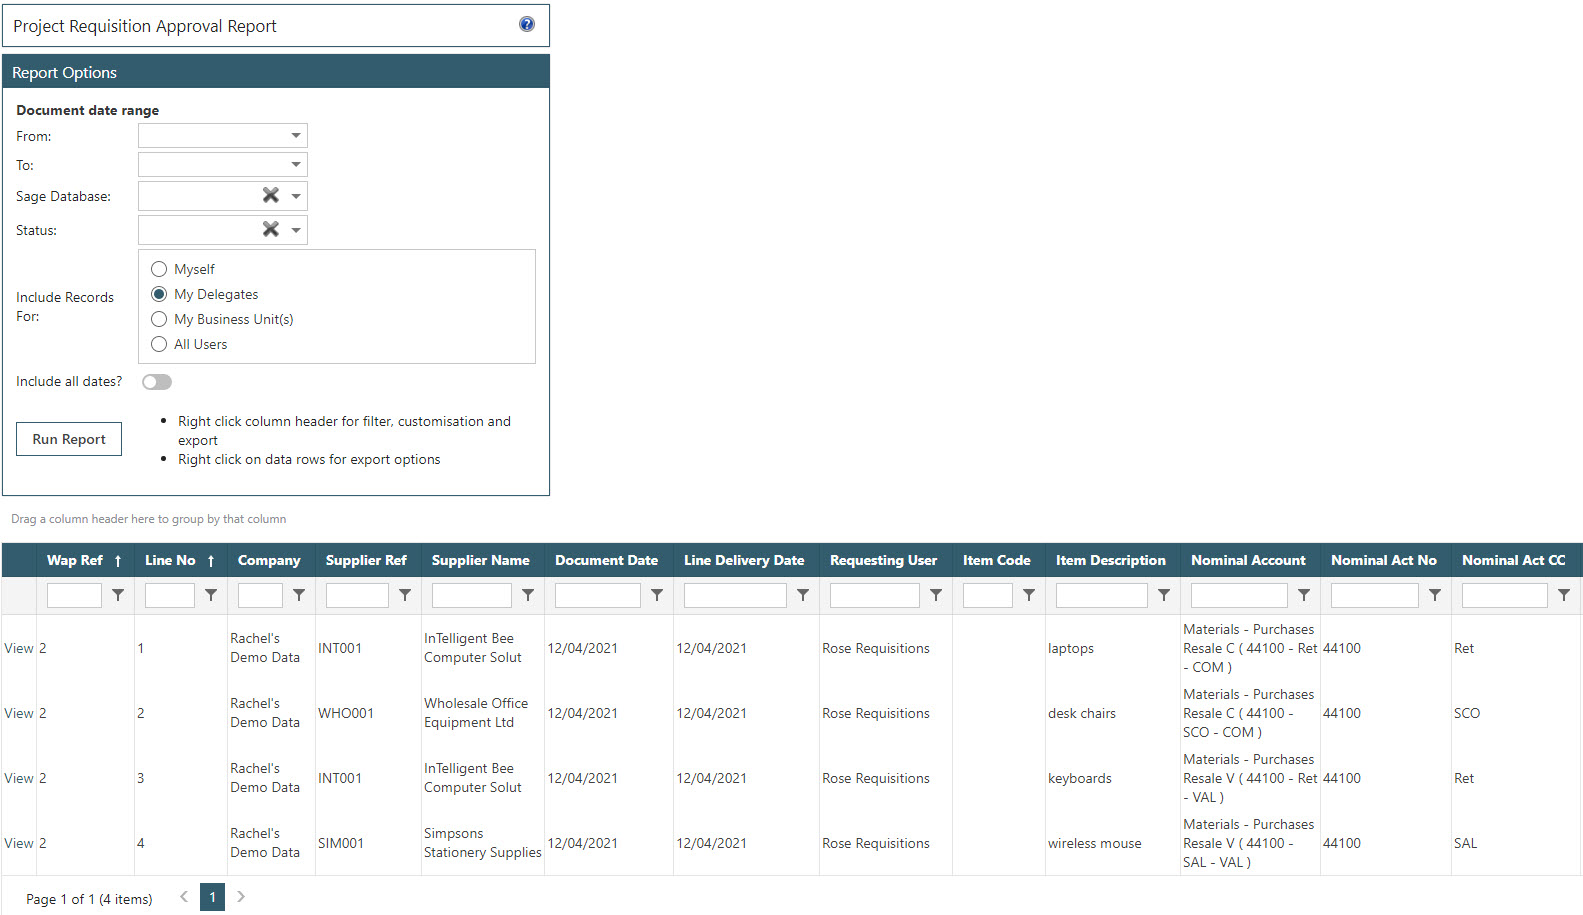 Sicon WAP Purchase Requisitions Help and User Guide - Requisition HUG Section 23.16 Image 2